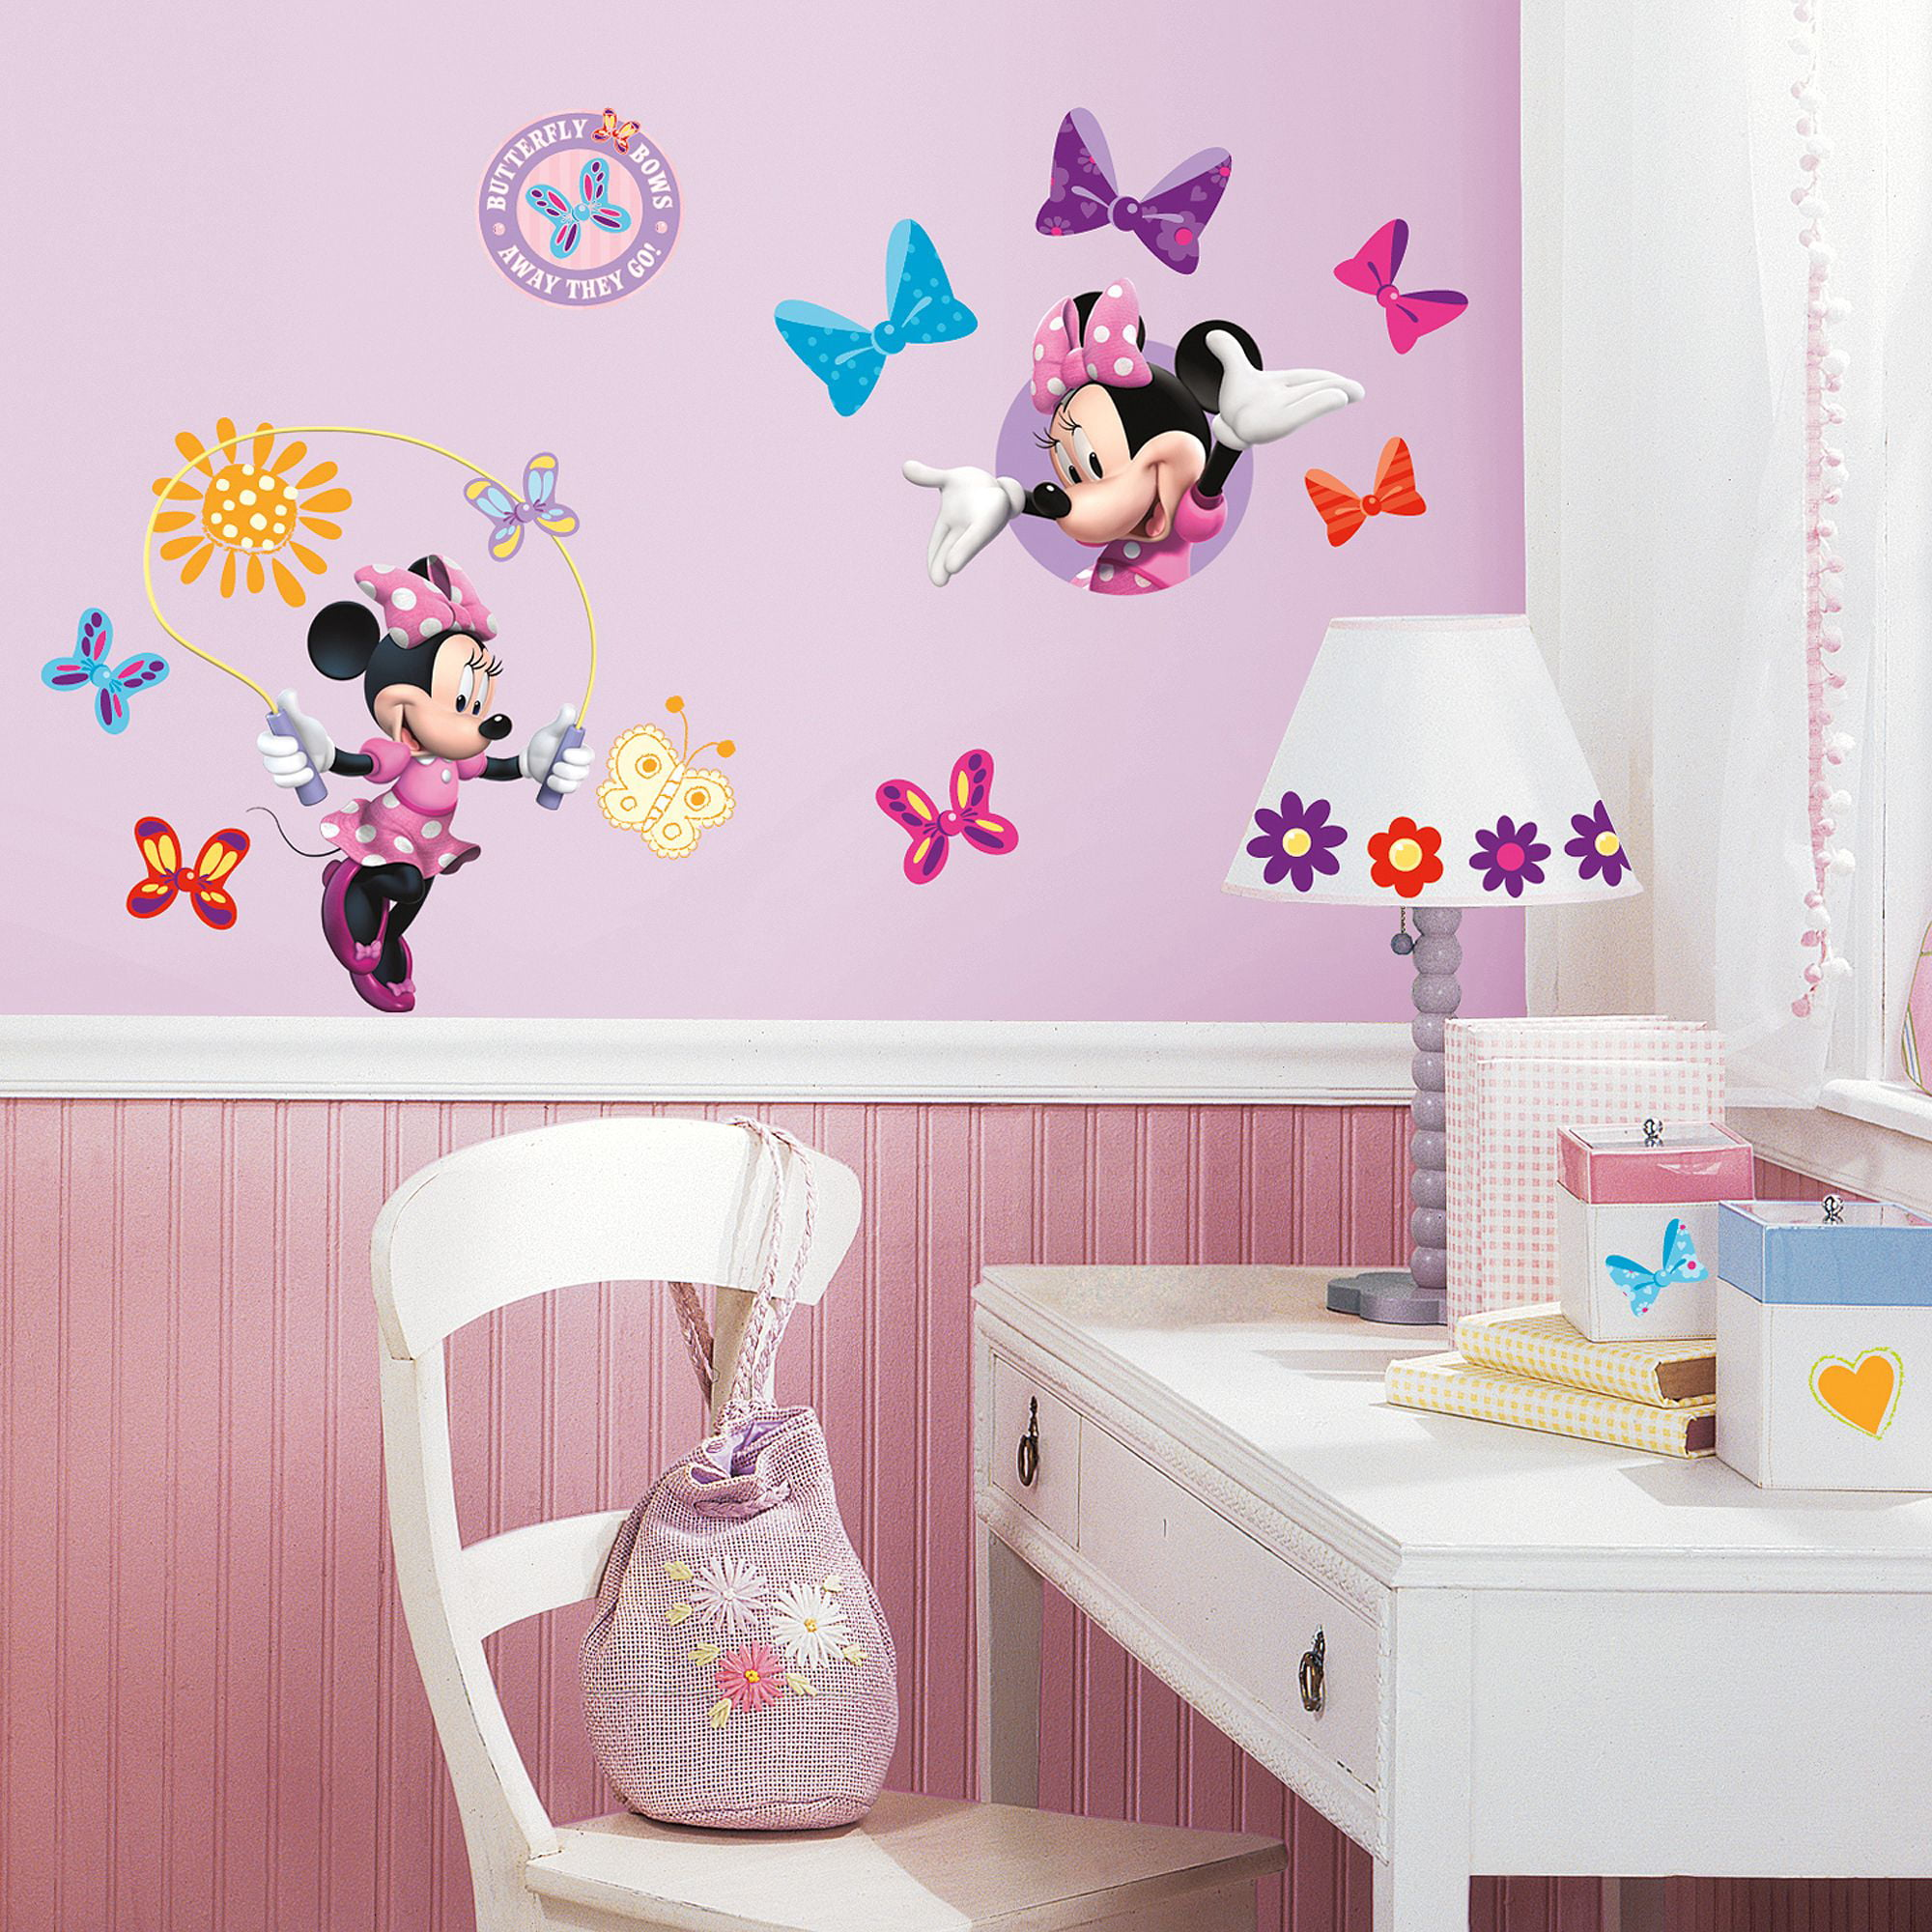 Kids room wall decor stickers - Roommates Mickey And Friends Minnie Bow Tique Peel And Stick Wall Decals Walmart Com